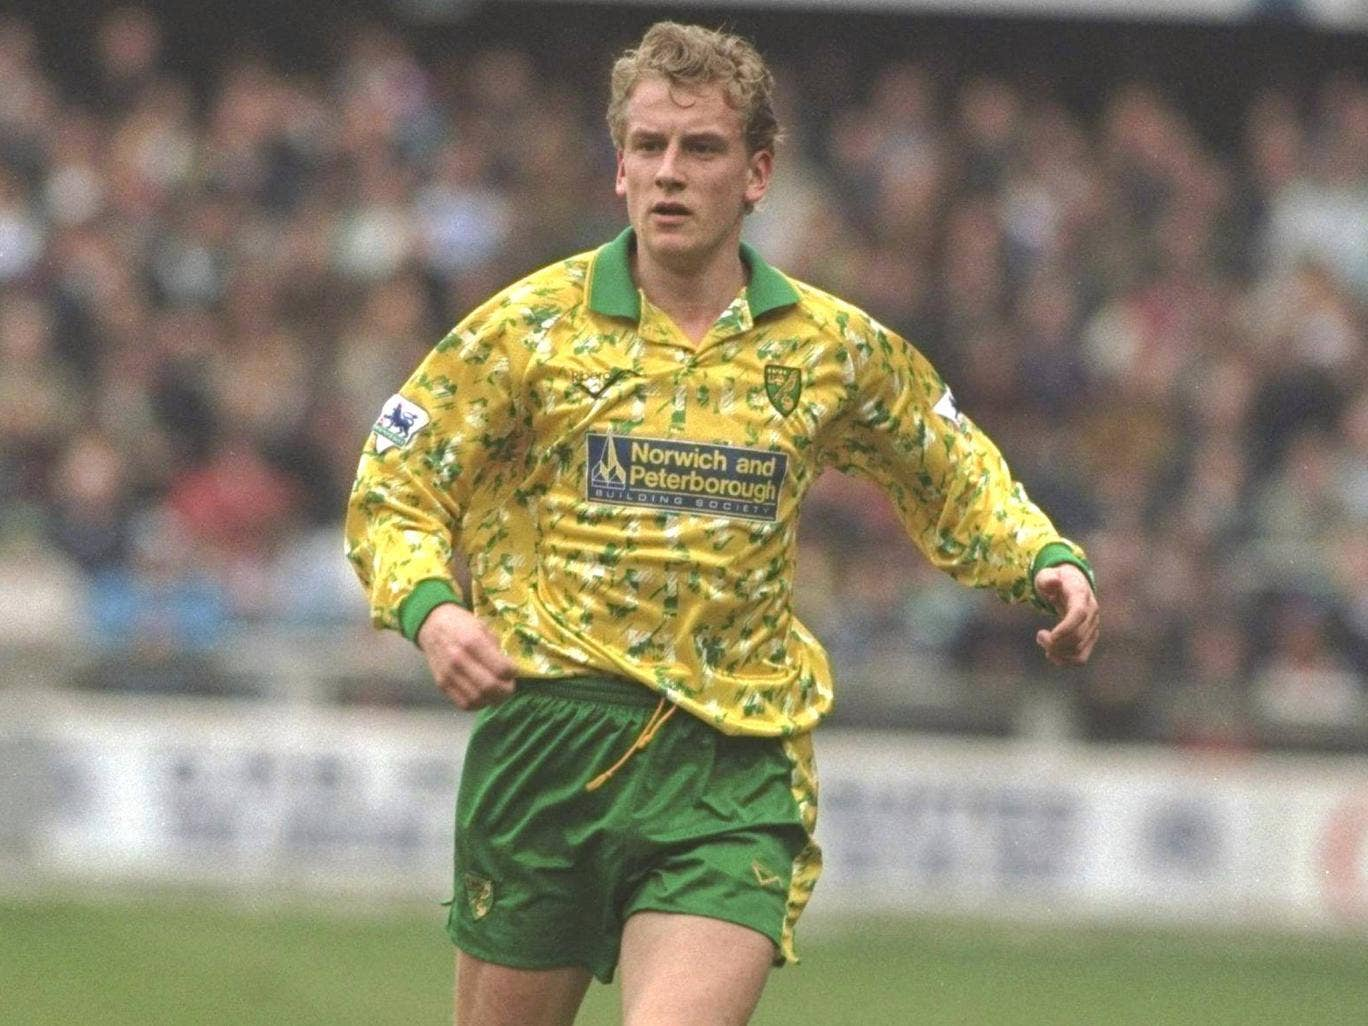 Lee Power in his Norwich City days, when he first forged links with Spurs' Tim Sherwood